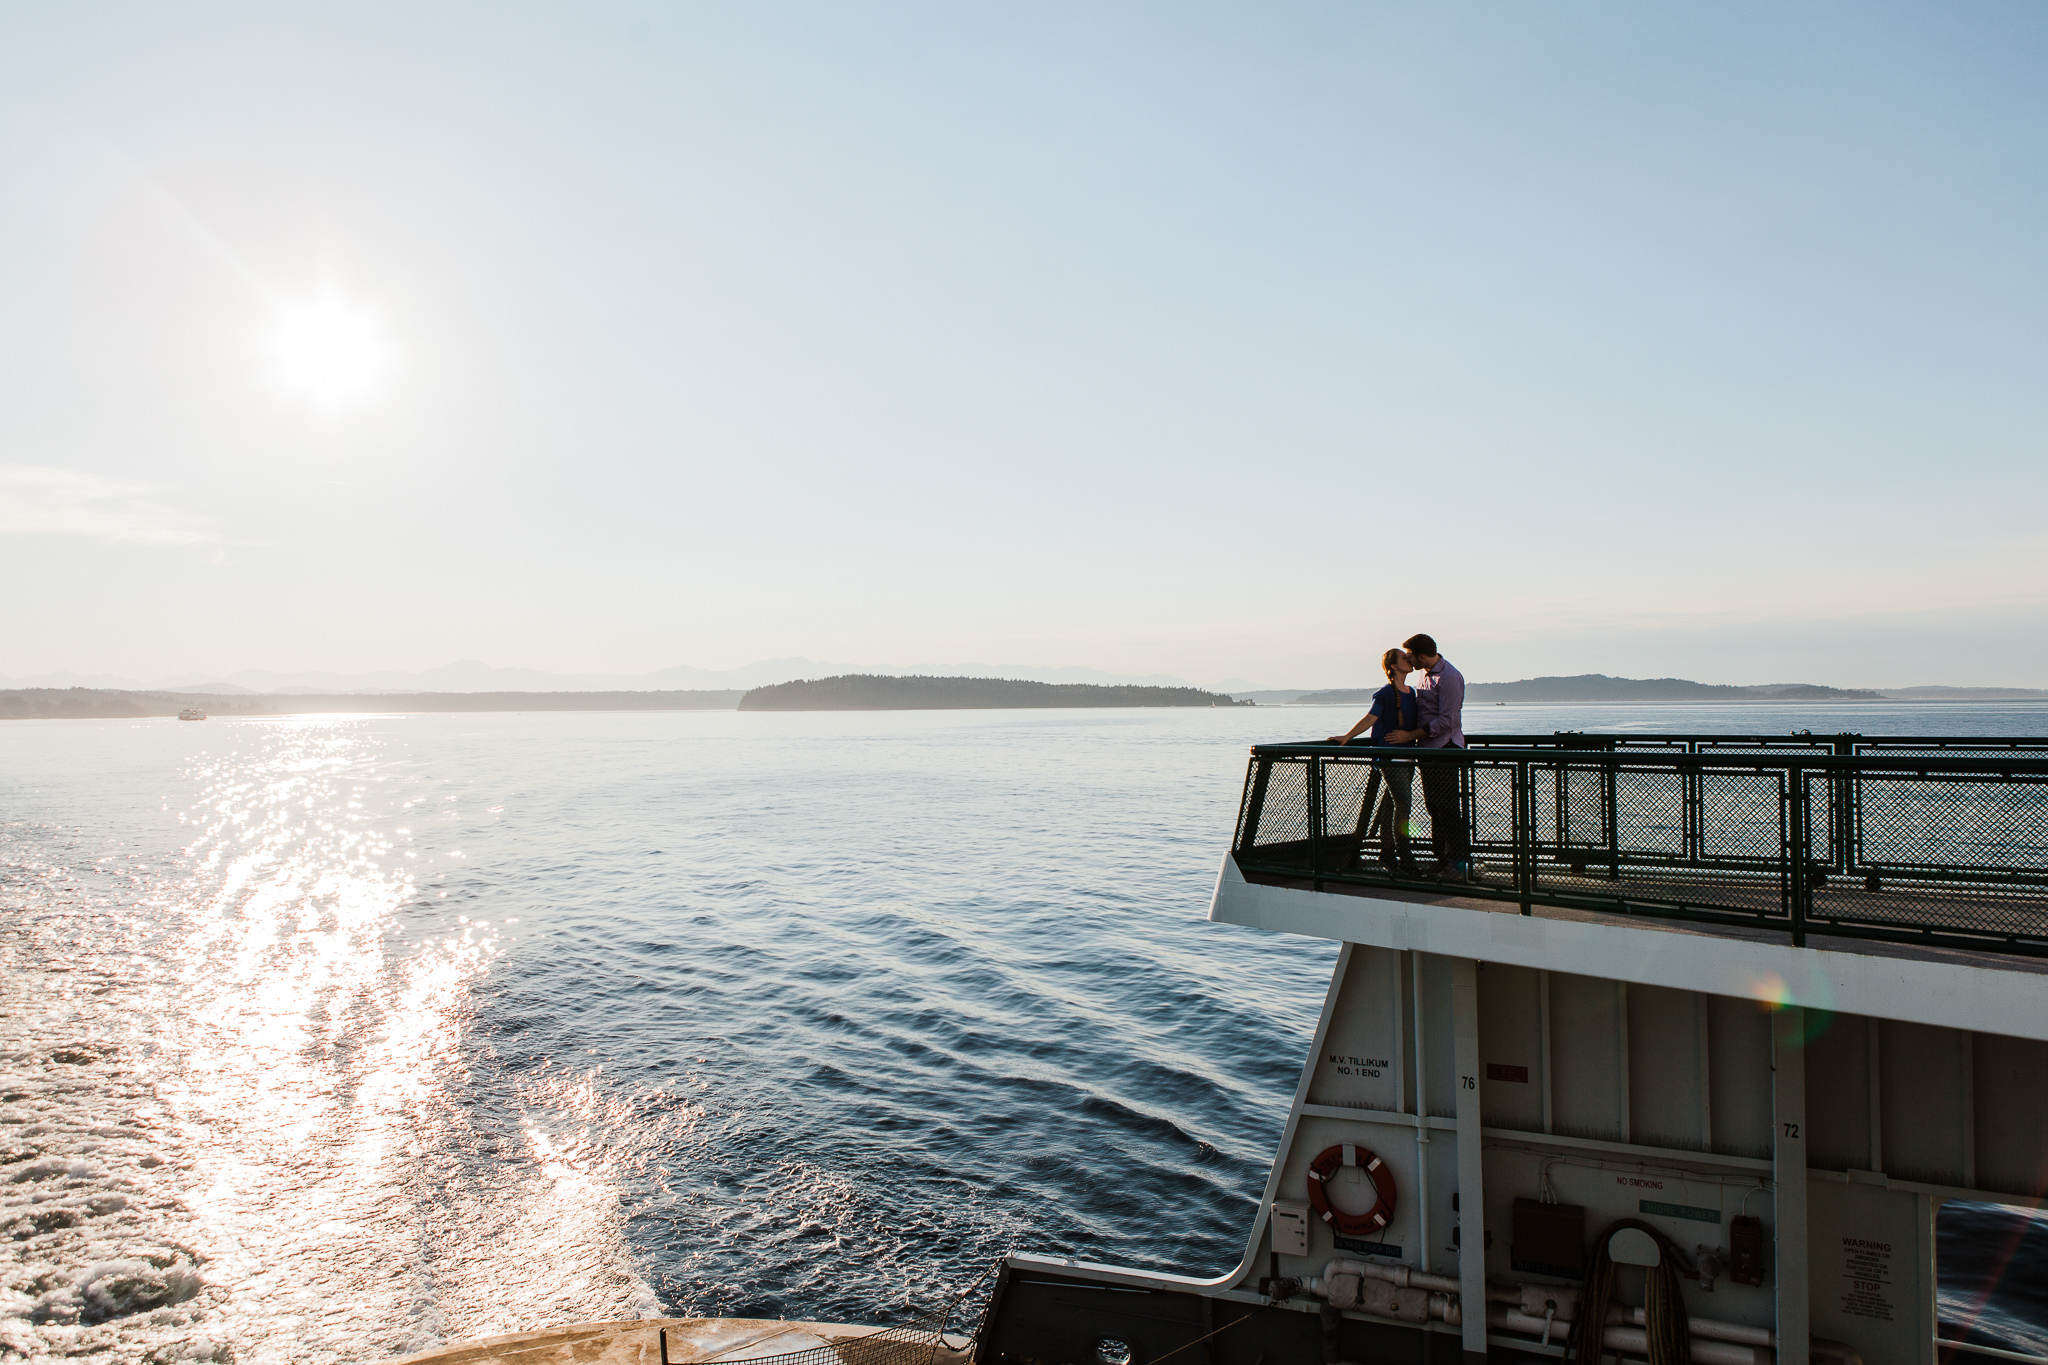 couple riding on a ferry at sunset